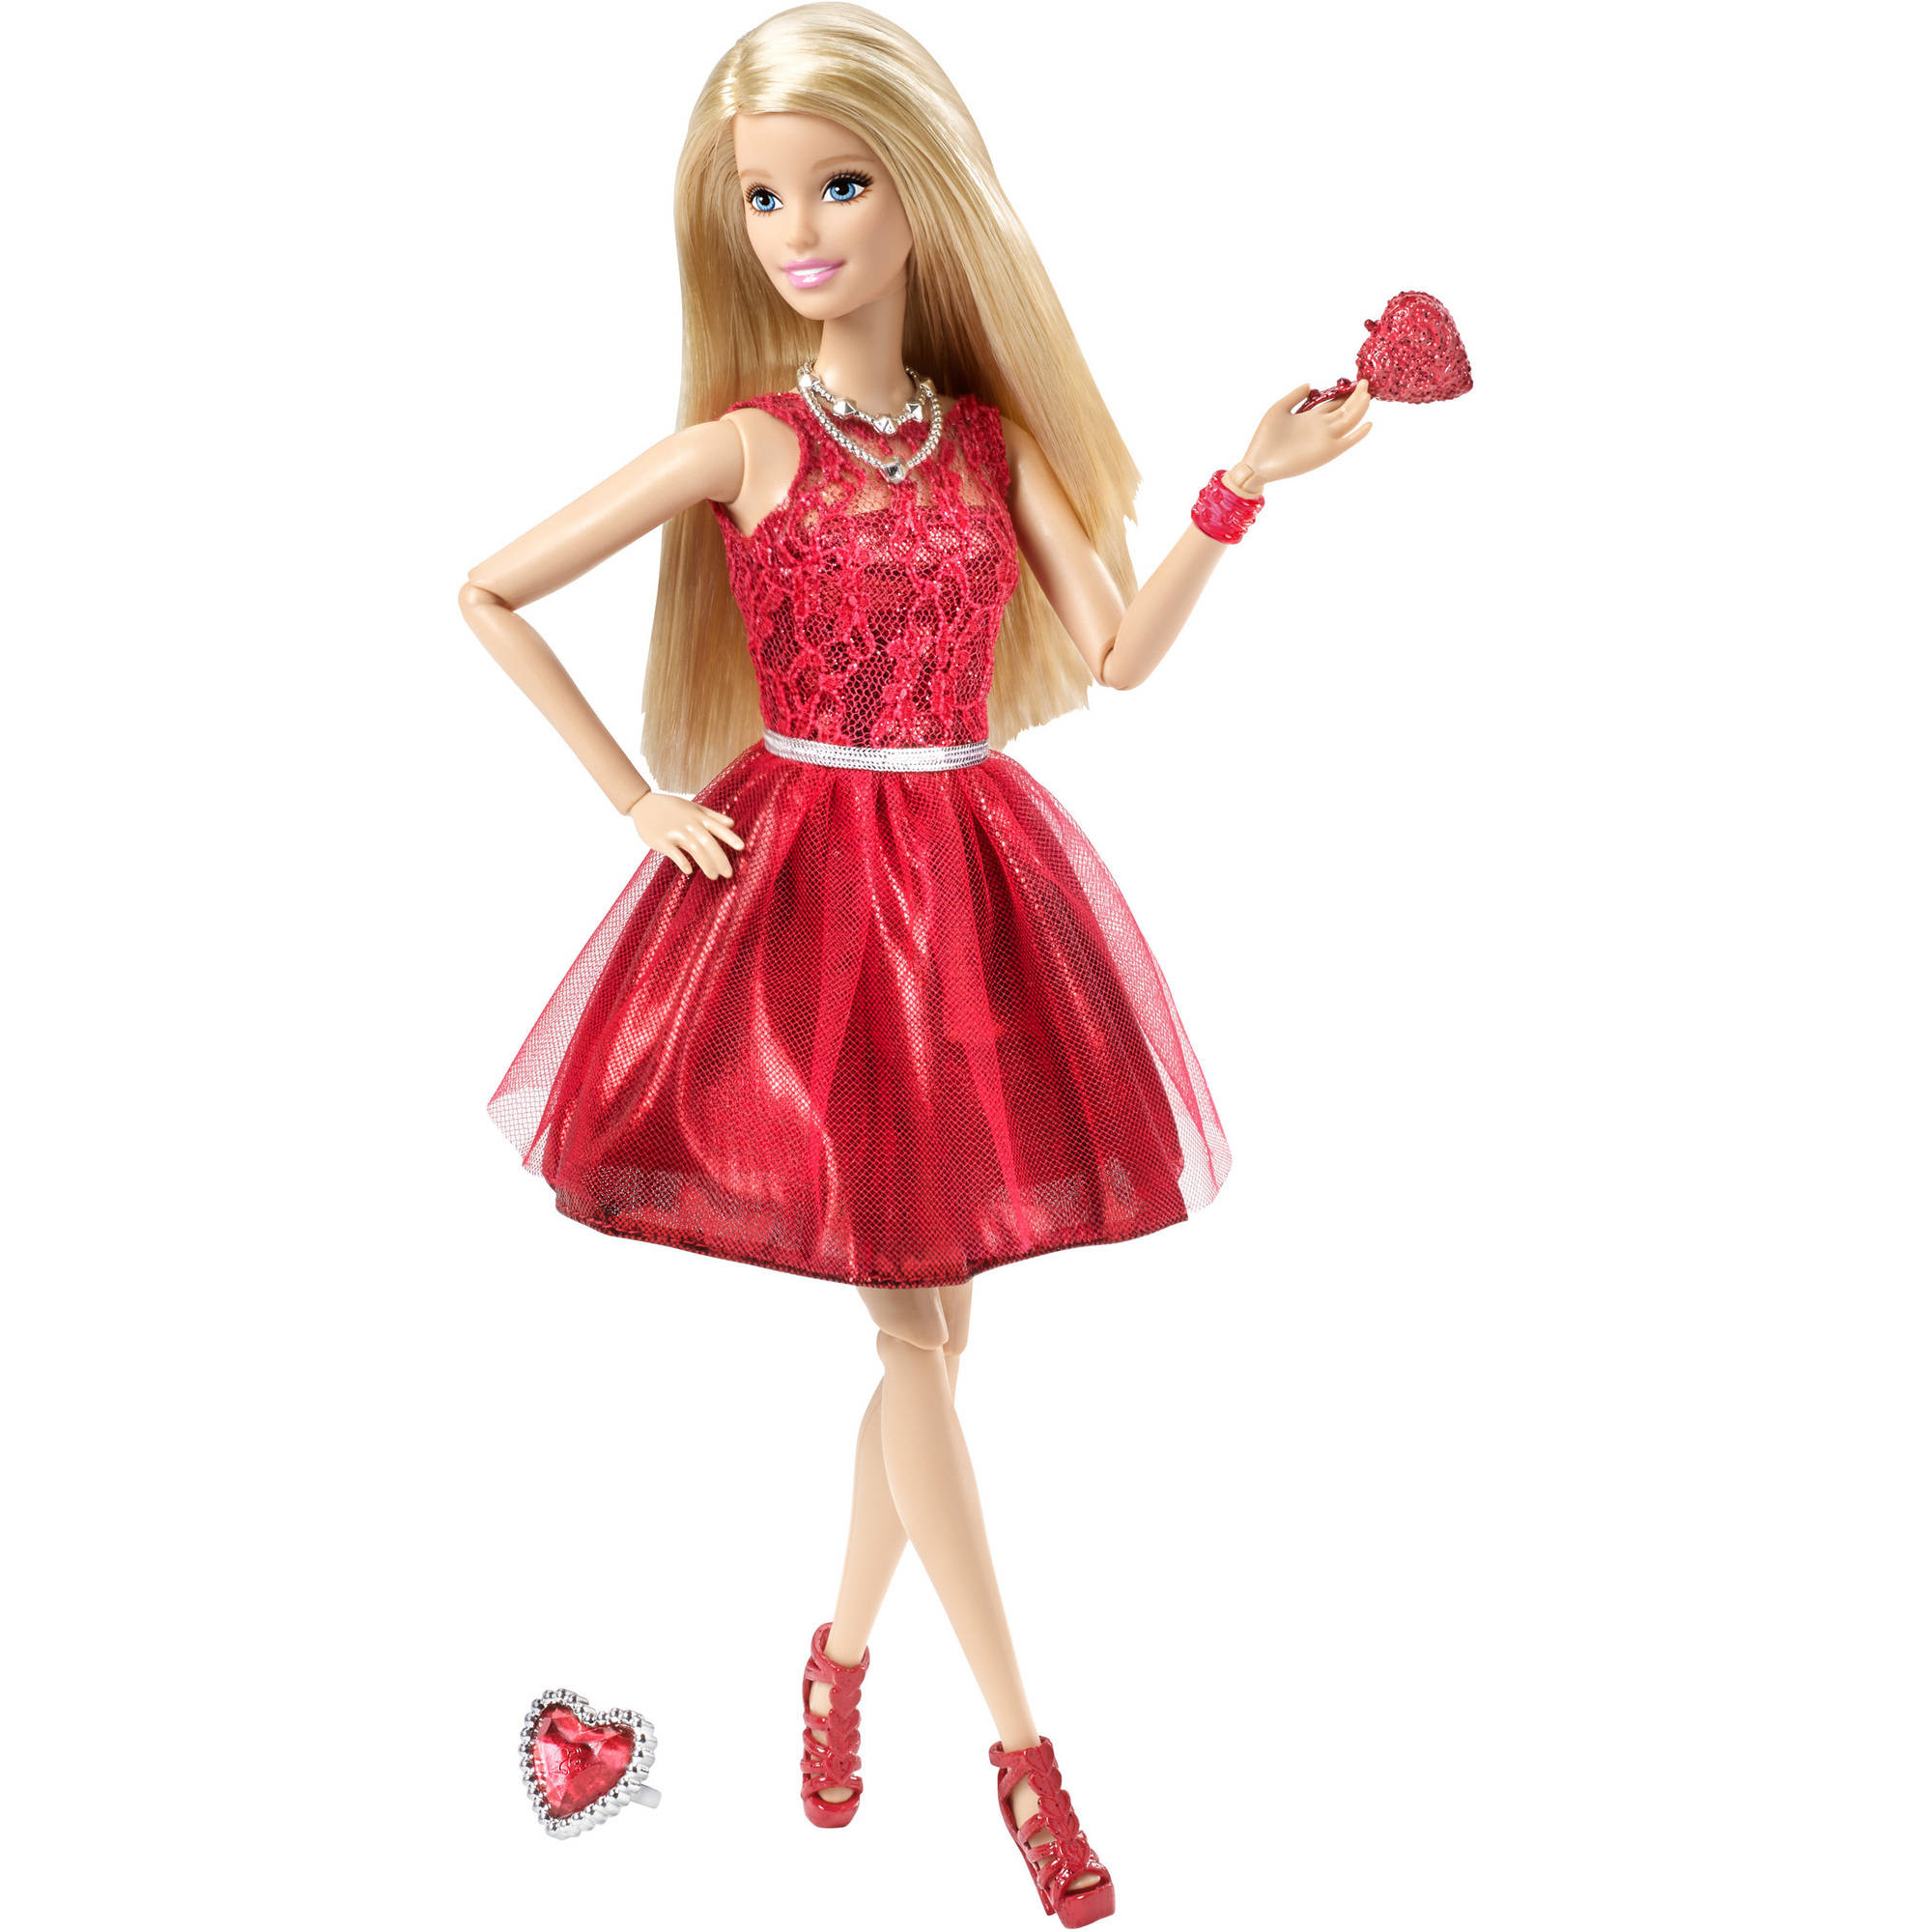 Barbie Birthstone Collectible Doll, January